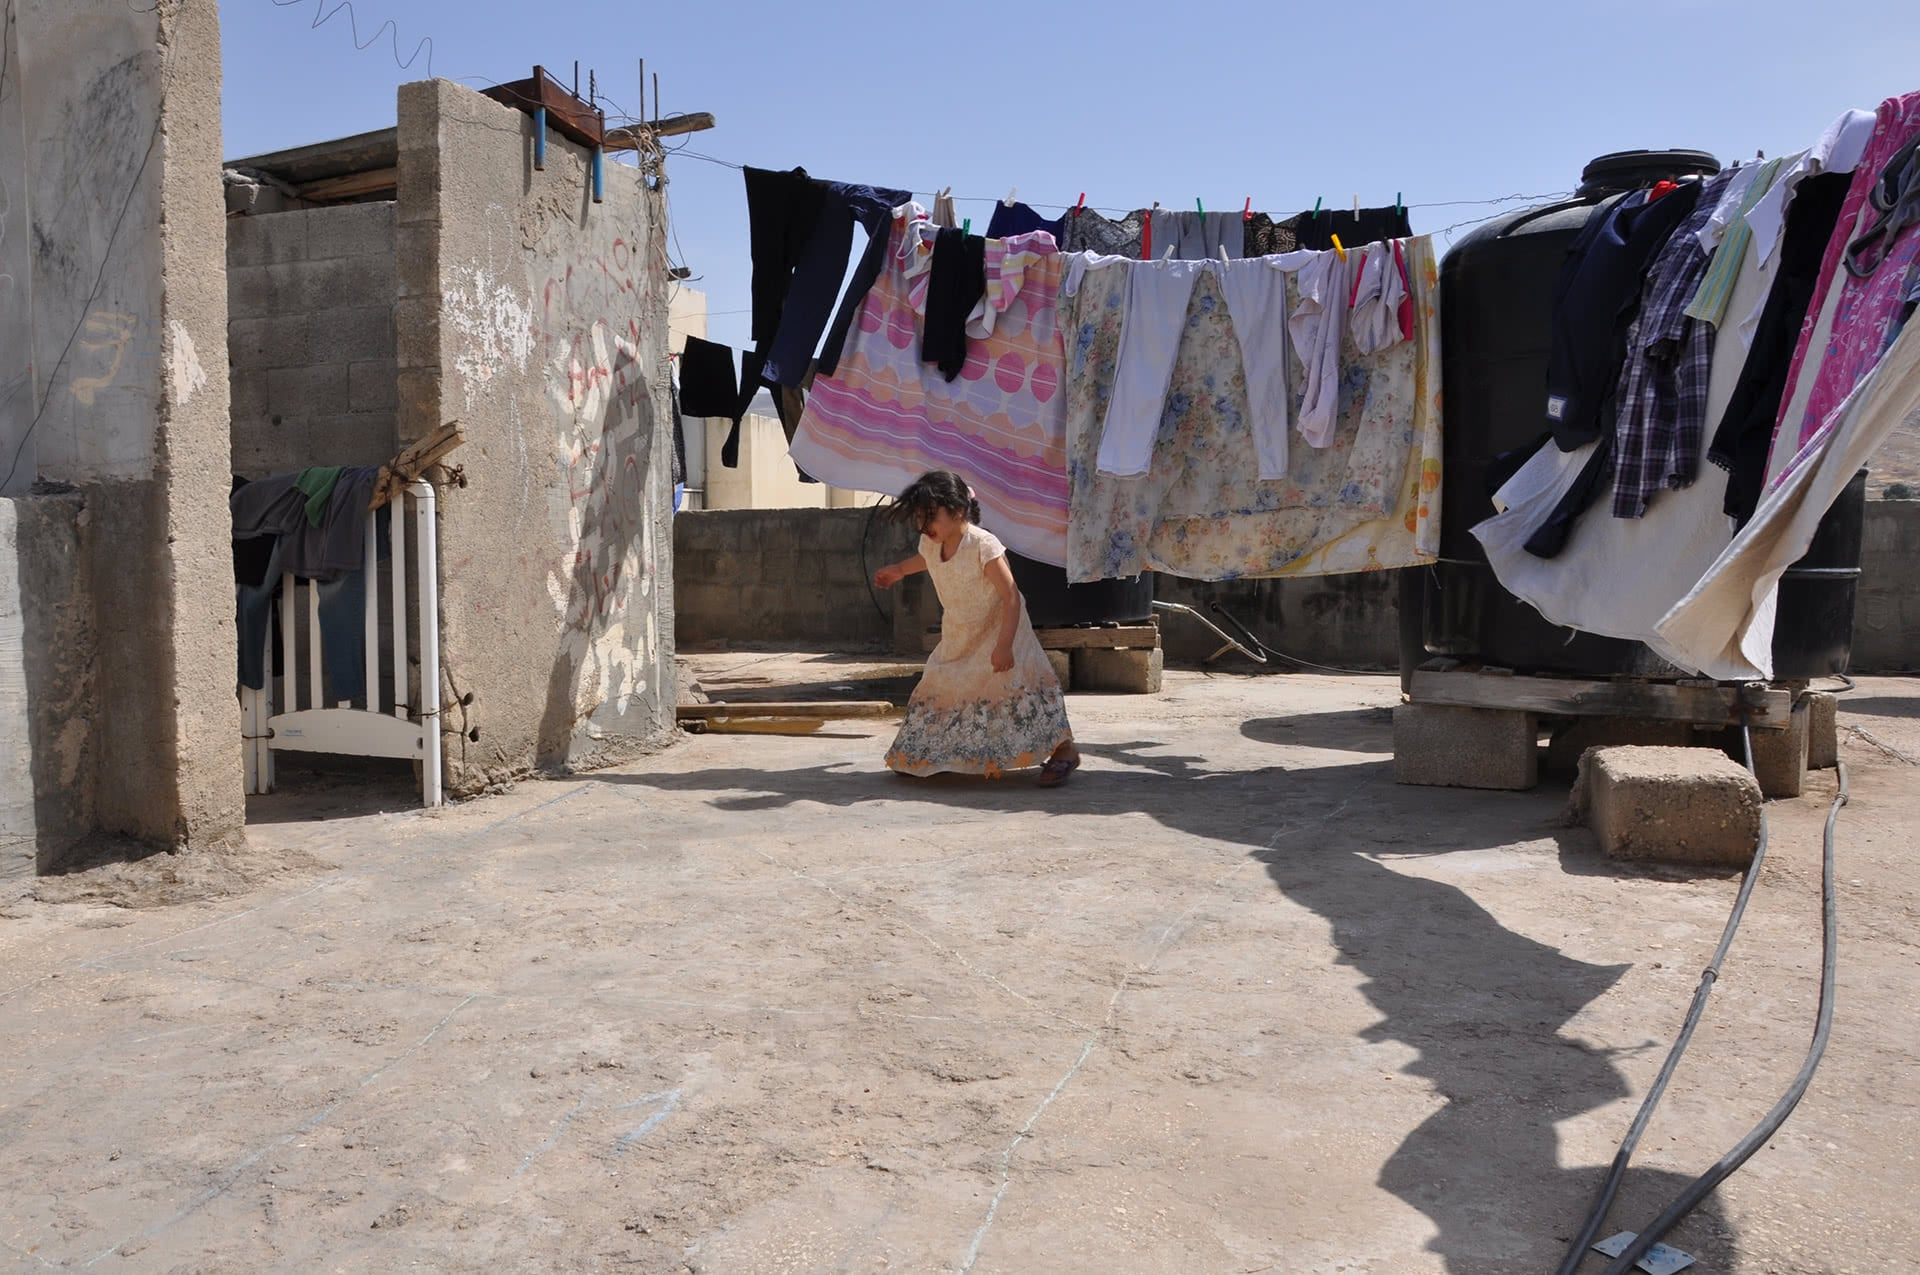 Tasneem Abd al-Jawad, 4, plays a chalk game on the roof of her home in Fara'a refugee camp. (Photo: DCIP / Emily Thomas)